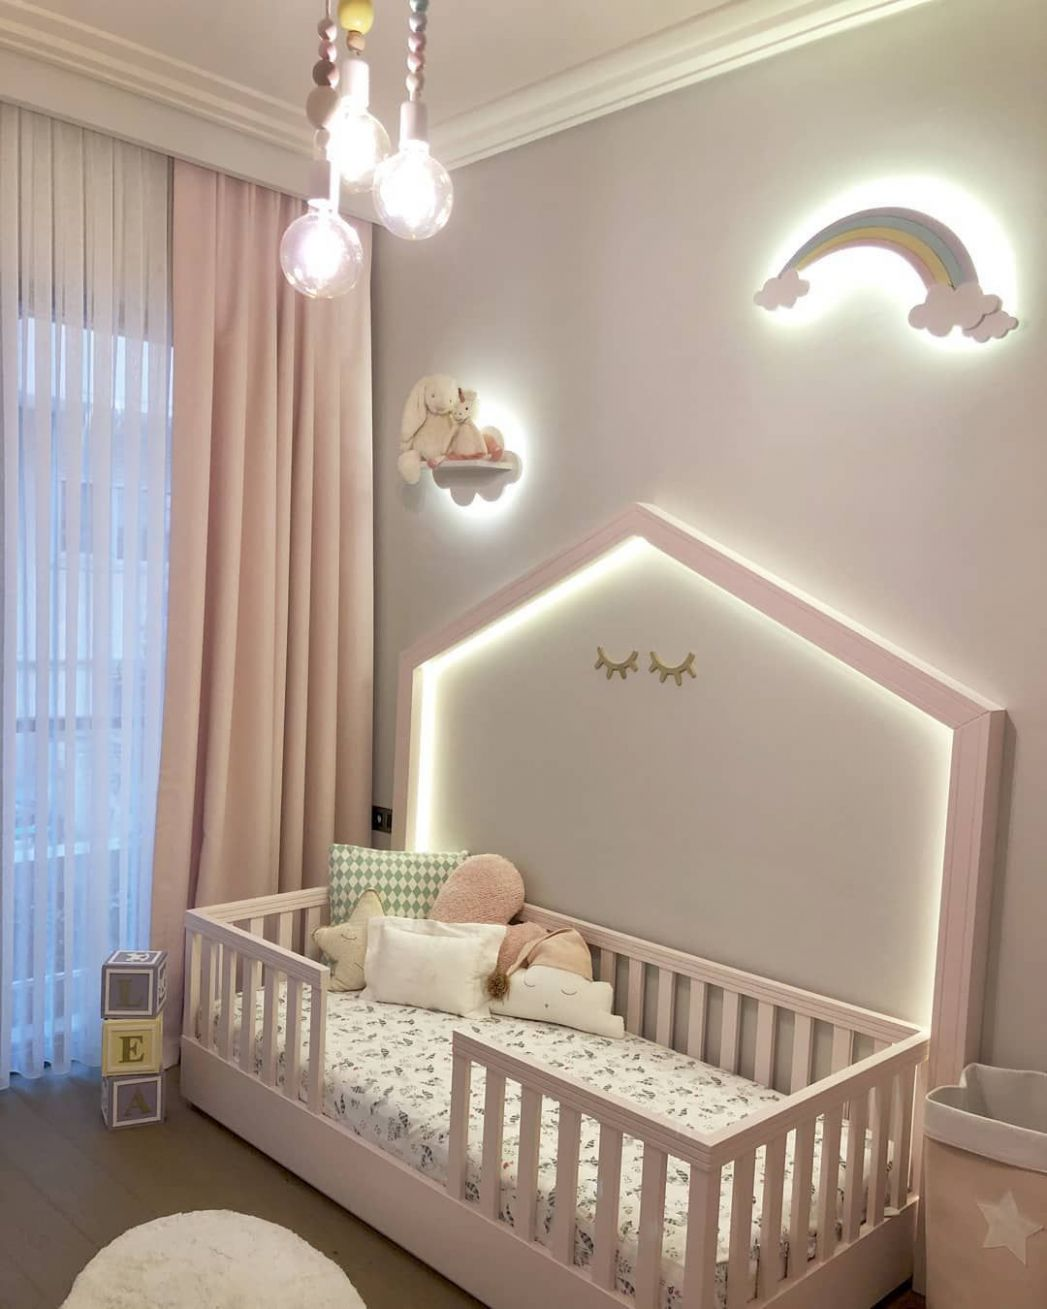 Best Baby Girl Room Ideas | Girl room, Baby room decor, Toddler rooms - baby room inspiration